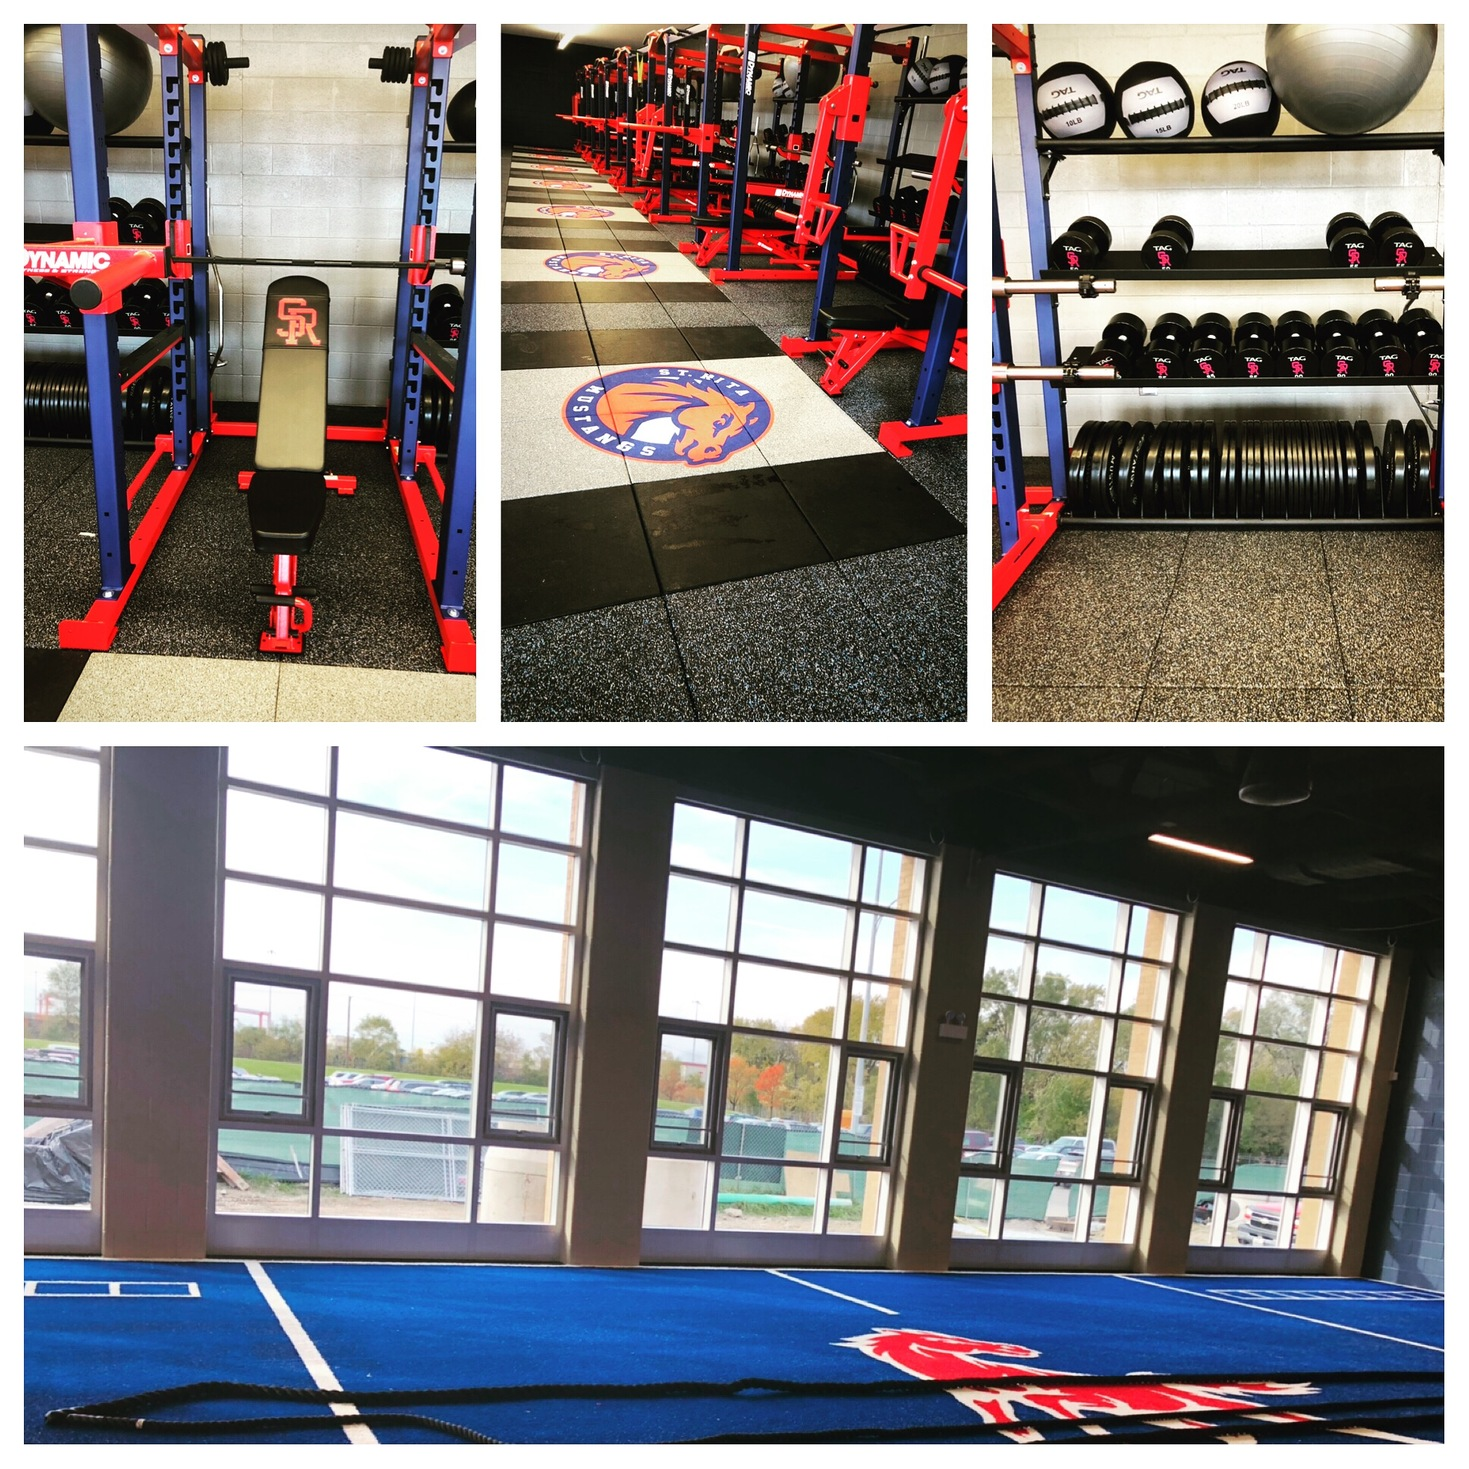 Ernie Mrozek Fitness Center